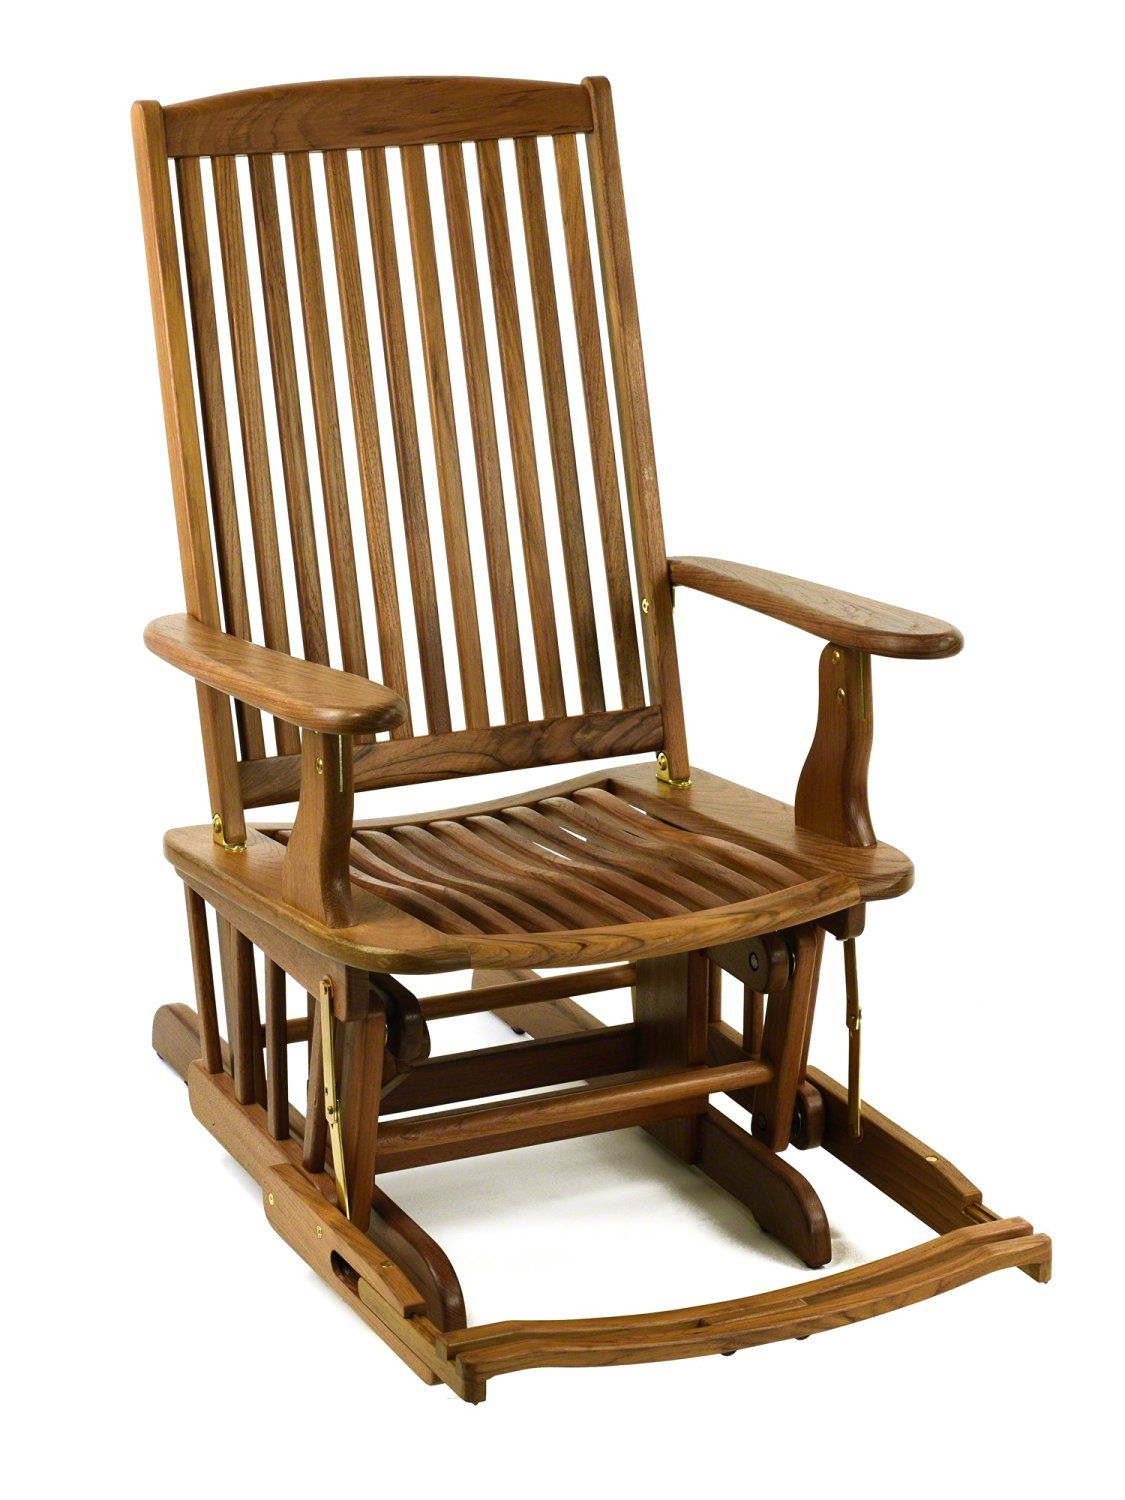 cheap glider chair womb replica teak find deals on line at whitecap finished